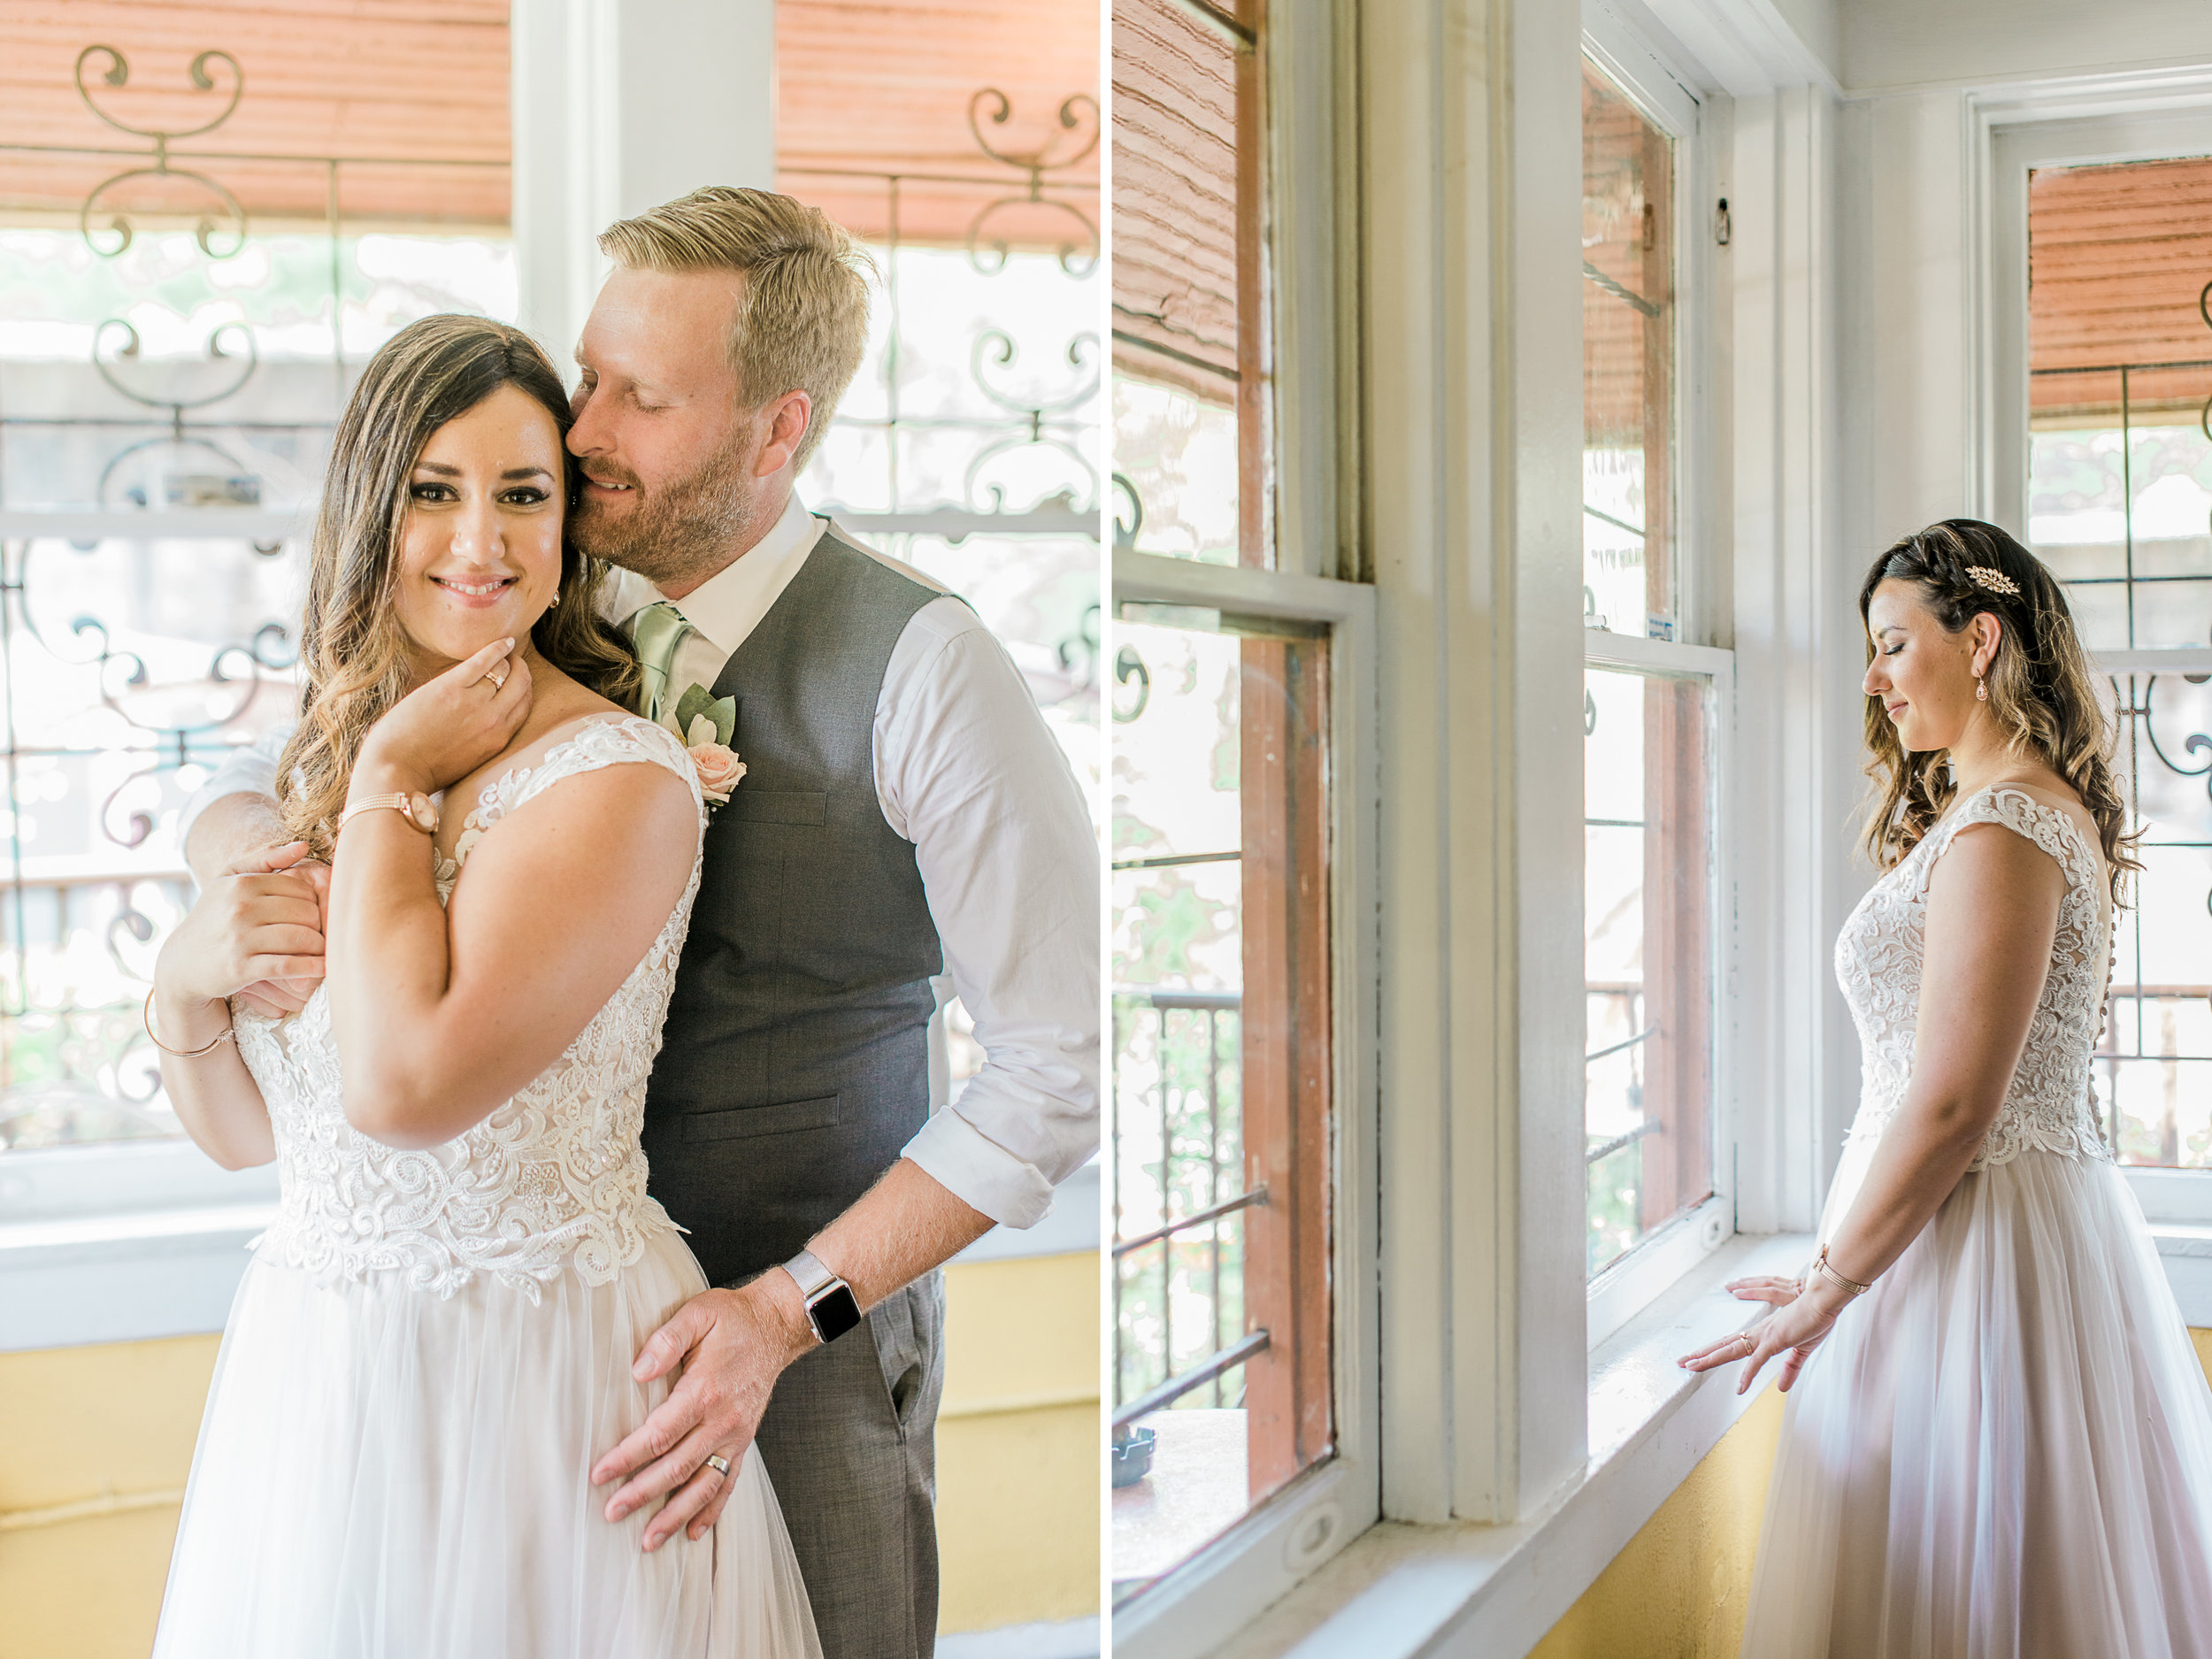 SmithWedding_HoustonTexasWeddingPhotographer_LightandAiry_FilmPhotographer_AvantGarden_HoustonHeightsWedding17.jpg